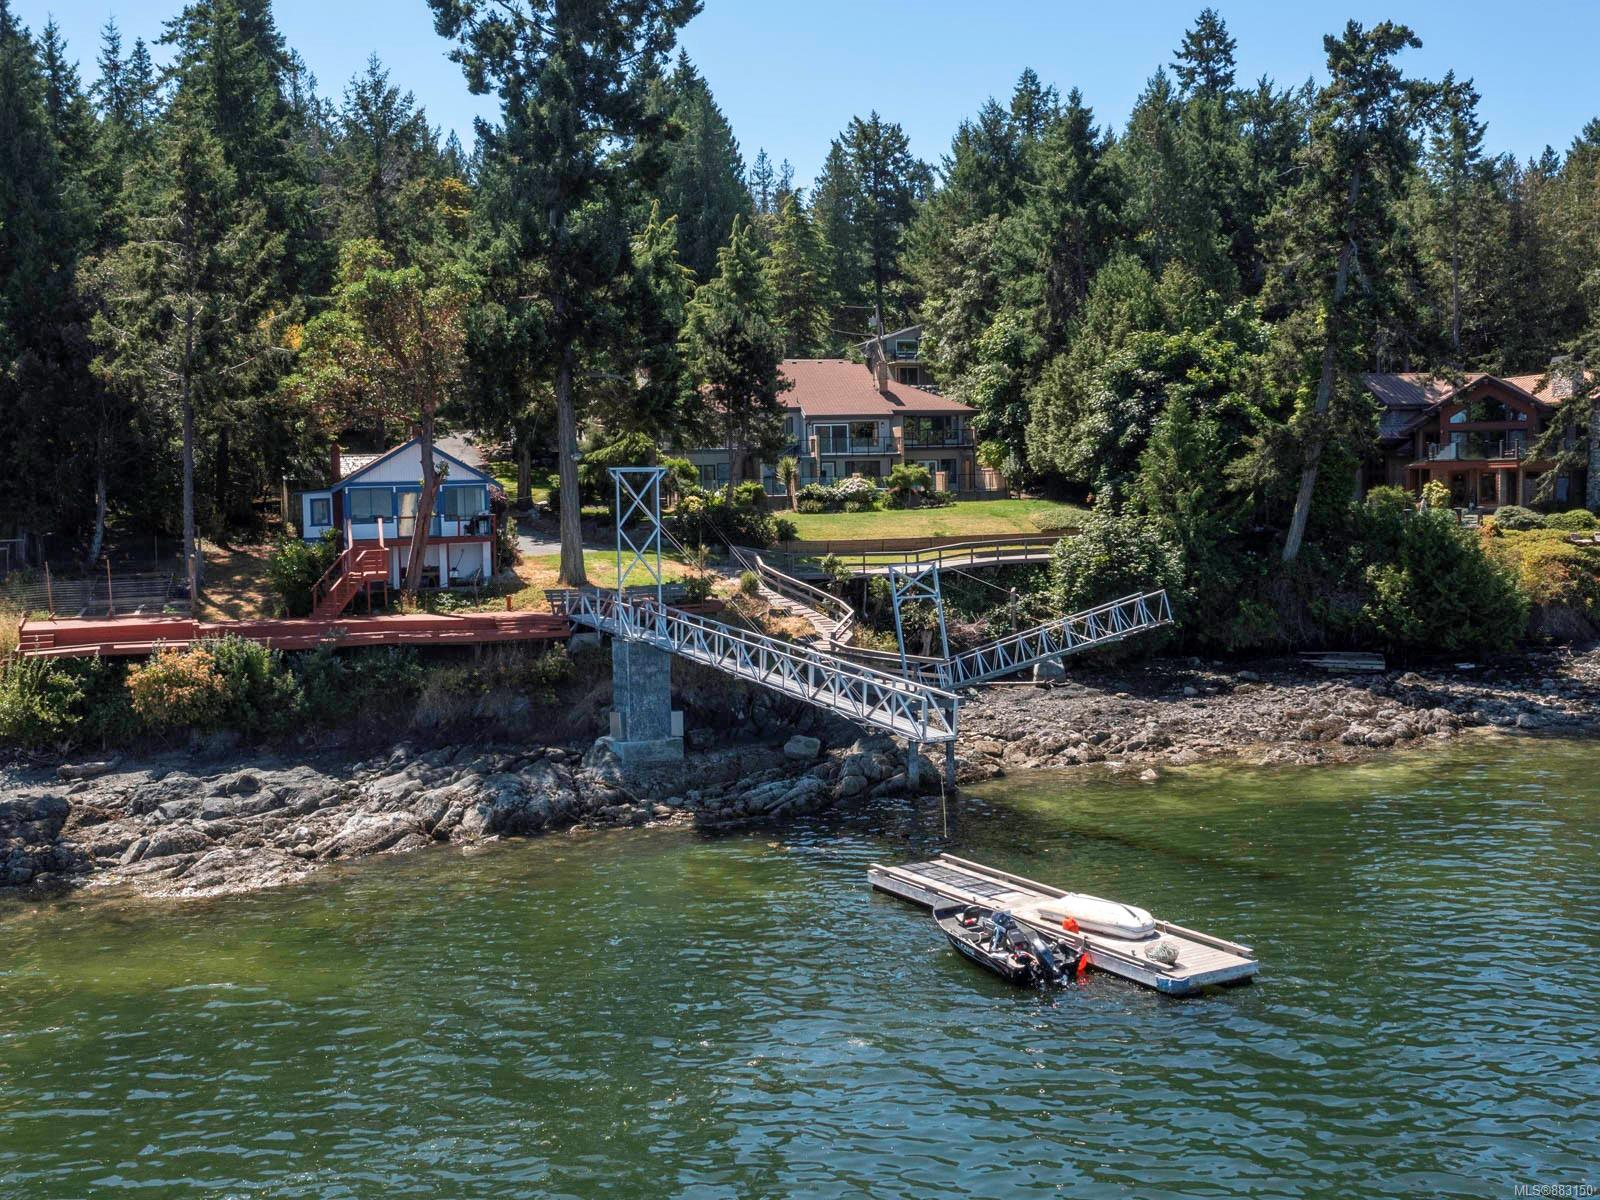 UNIQUE & RARE OCEANFRONT OFFERING!! 2 titled oceanfront properties (2+acres) consisting of a main house and guest cottage, private moorage, inground heated pool...perfect for those looking to create the ultimate family compound! Main house renovated in 2020 offering engineered hardwood throughout. 2 chef-inspired kitchens perfect for entertaining...granite counters, stainless steel appliances & 2 natural gas cooktops. Main floor principal bedroom with ensuite that overlooks private courtyard. 3 spacious bedrooms on the lower level, each with walkout to patio and pool. Main house has over 3000 sq ft of oceanfront deck/patio space...you are going to love entertaining here! Oceanfront guest cottage is original and full of charm. The perfect 1 bedroom/1 bath open layout offering over 1300 sq ft of oceanfront deck and patio space. New dock (8'x40') & aluminium gangway in 2020 is a boaters dream! Stairs down to the water offer great beach combing at low tide & a lovely launch of your kayak